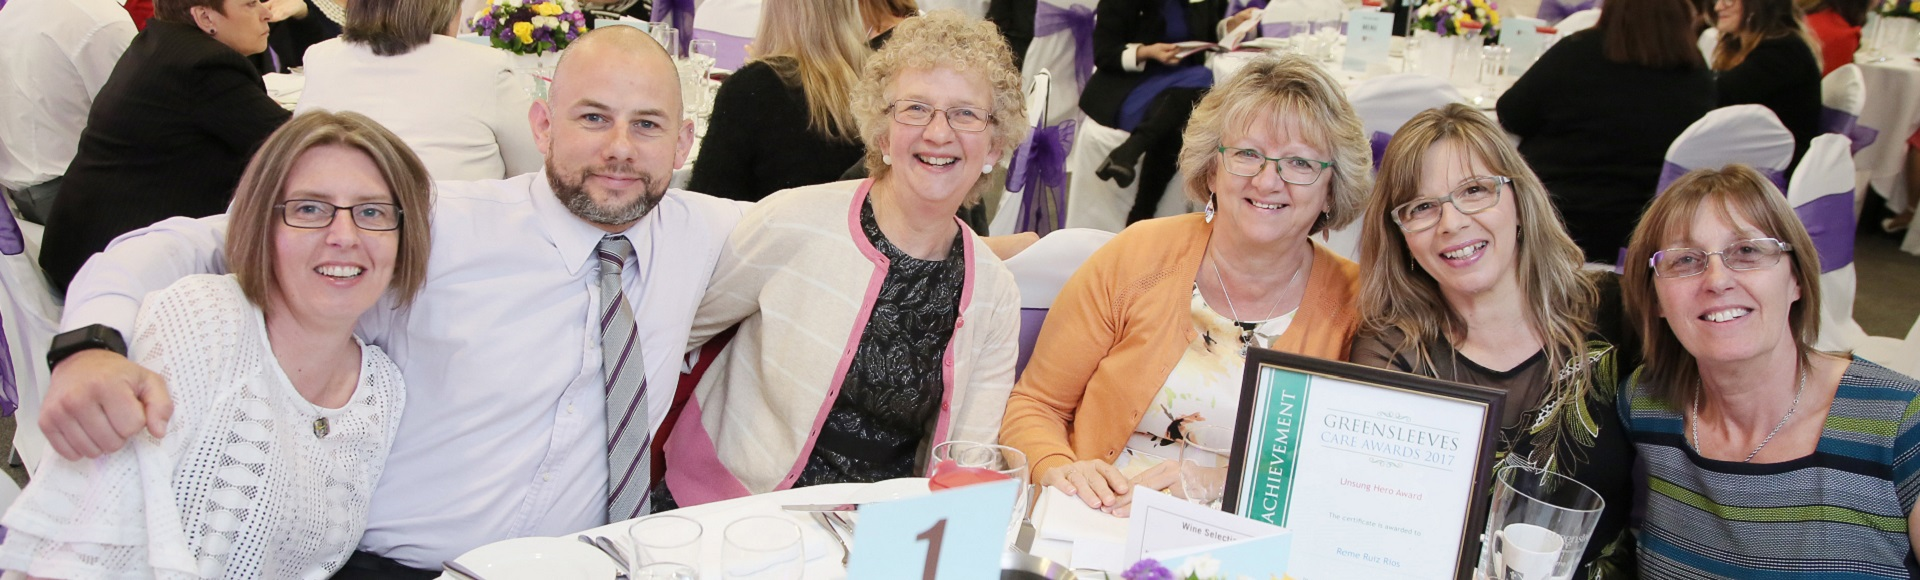 Greensleeves Care Awards - quality standards